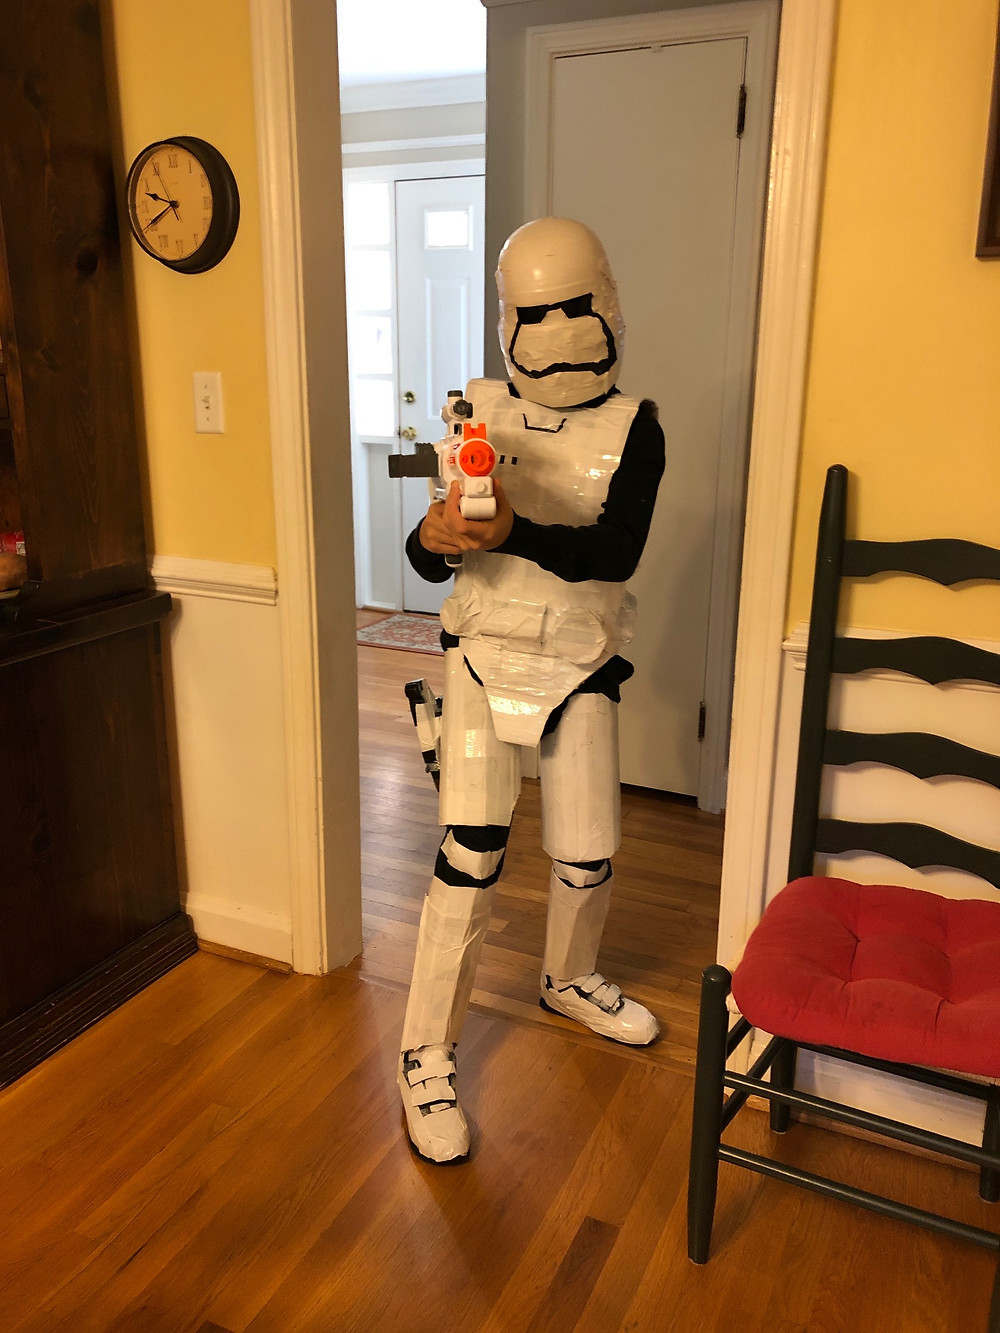 Shaw Shirley as a Storm Trooper